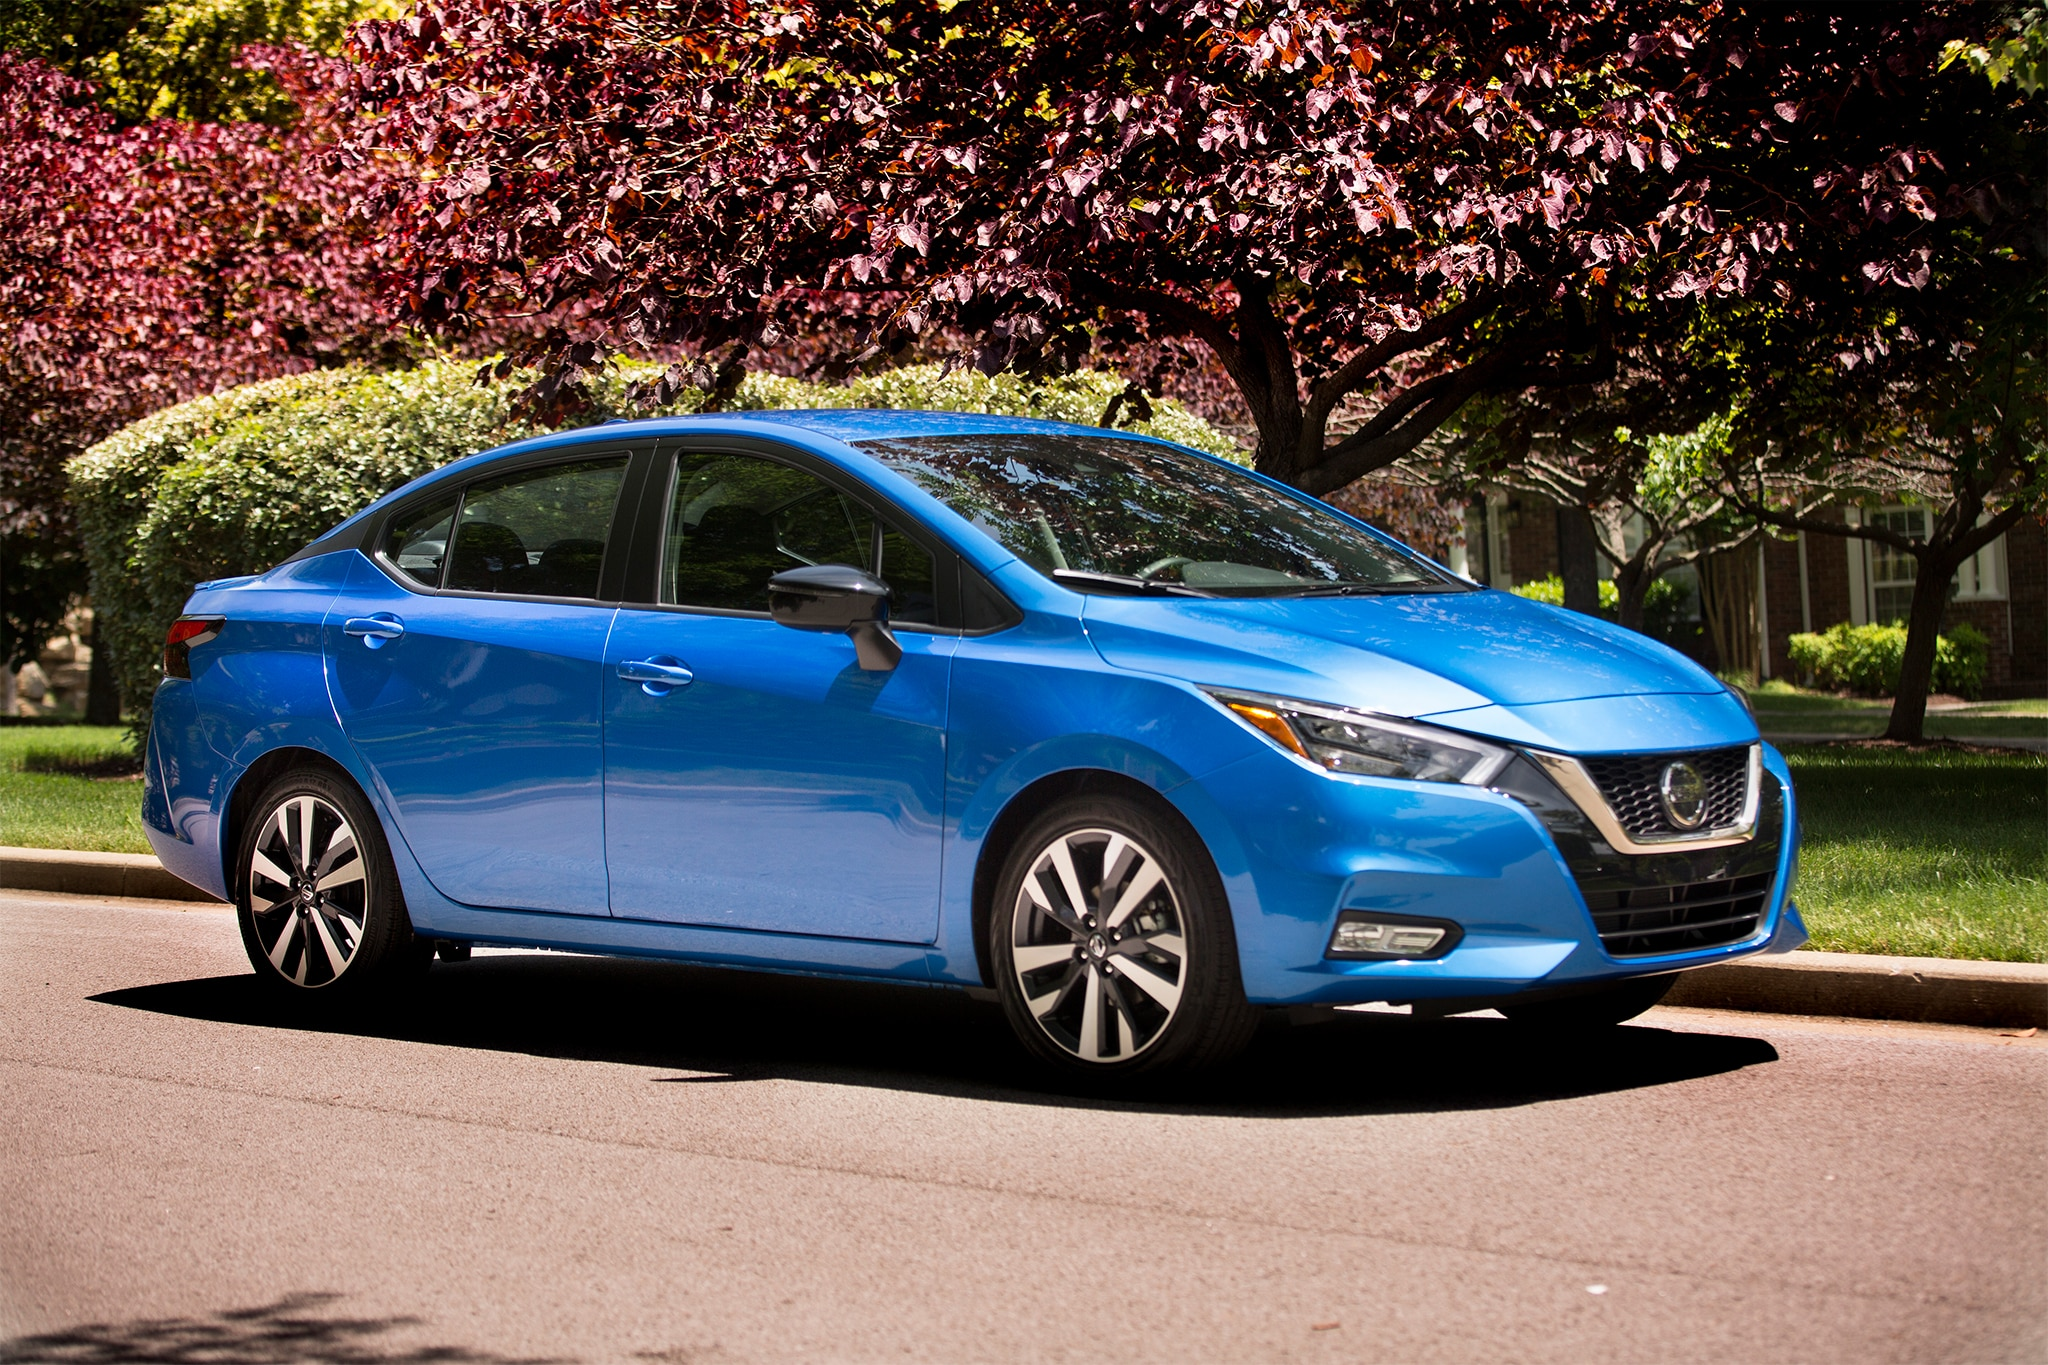 Driven The 2020 Nissan Versa Is Better Than You Expect